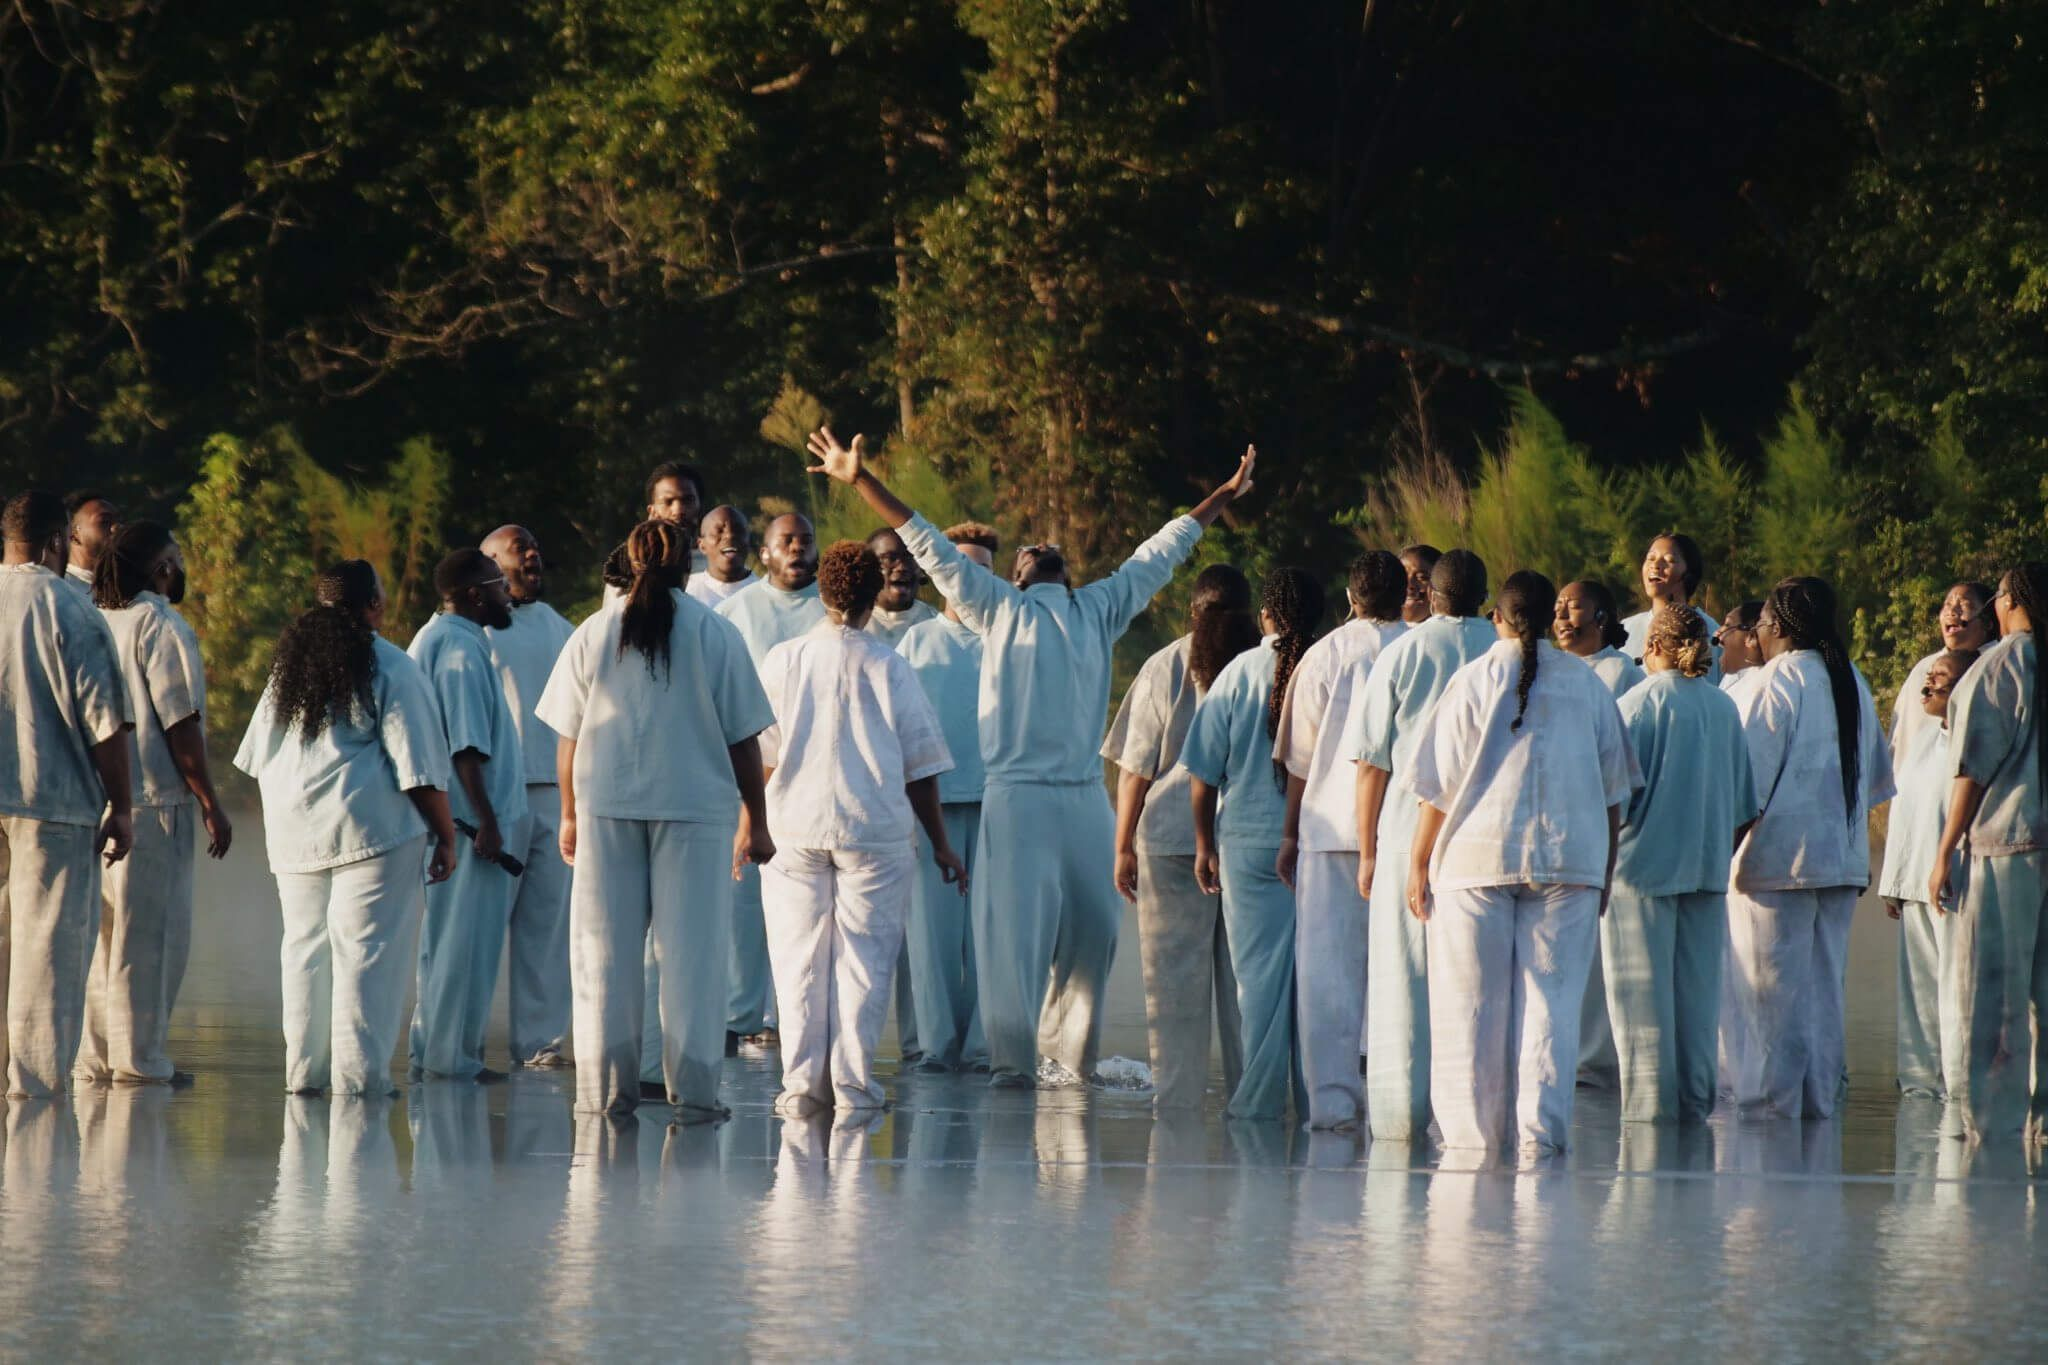 Kanye West Crew Walk On Water During Sunday Service Video In 2020 Kanye West Kim Kardashian And Kanye Kanye